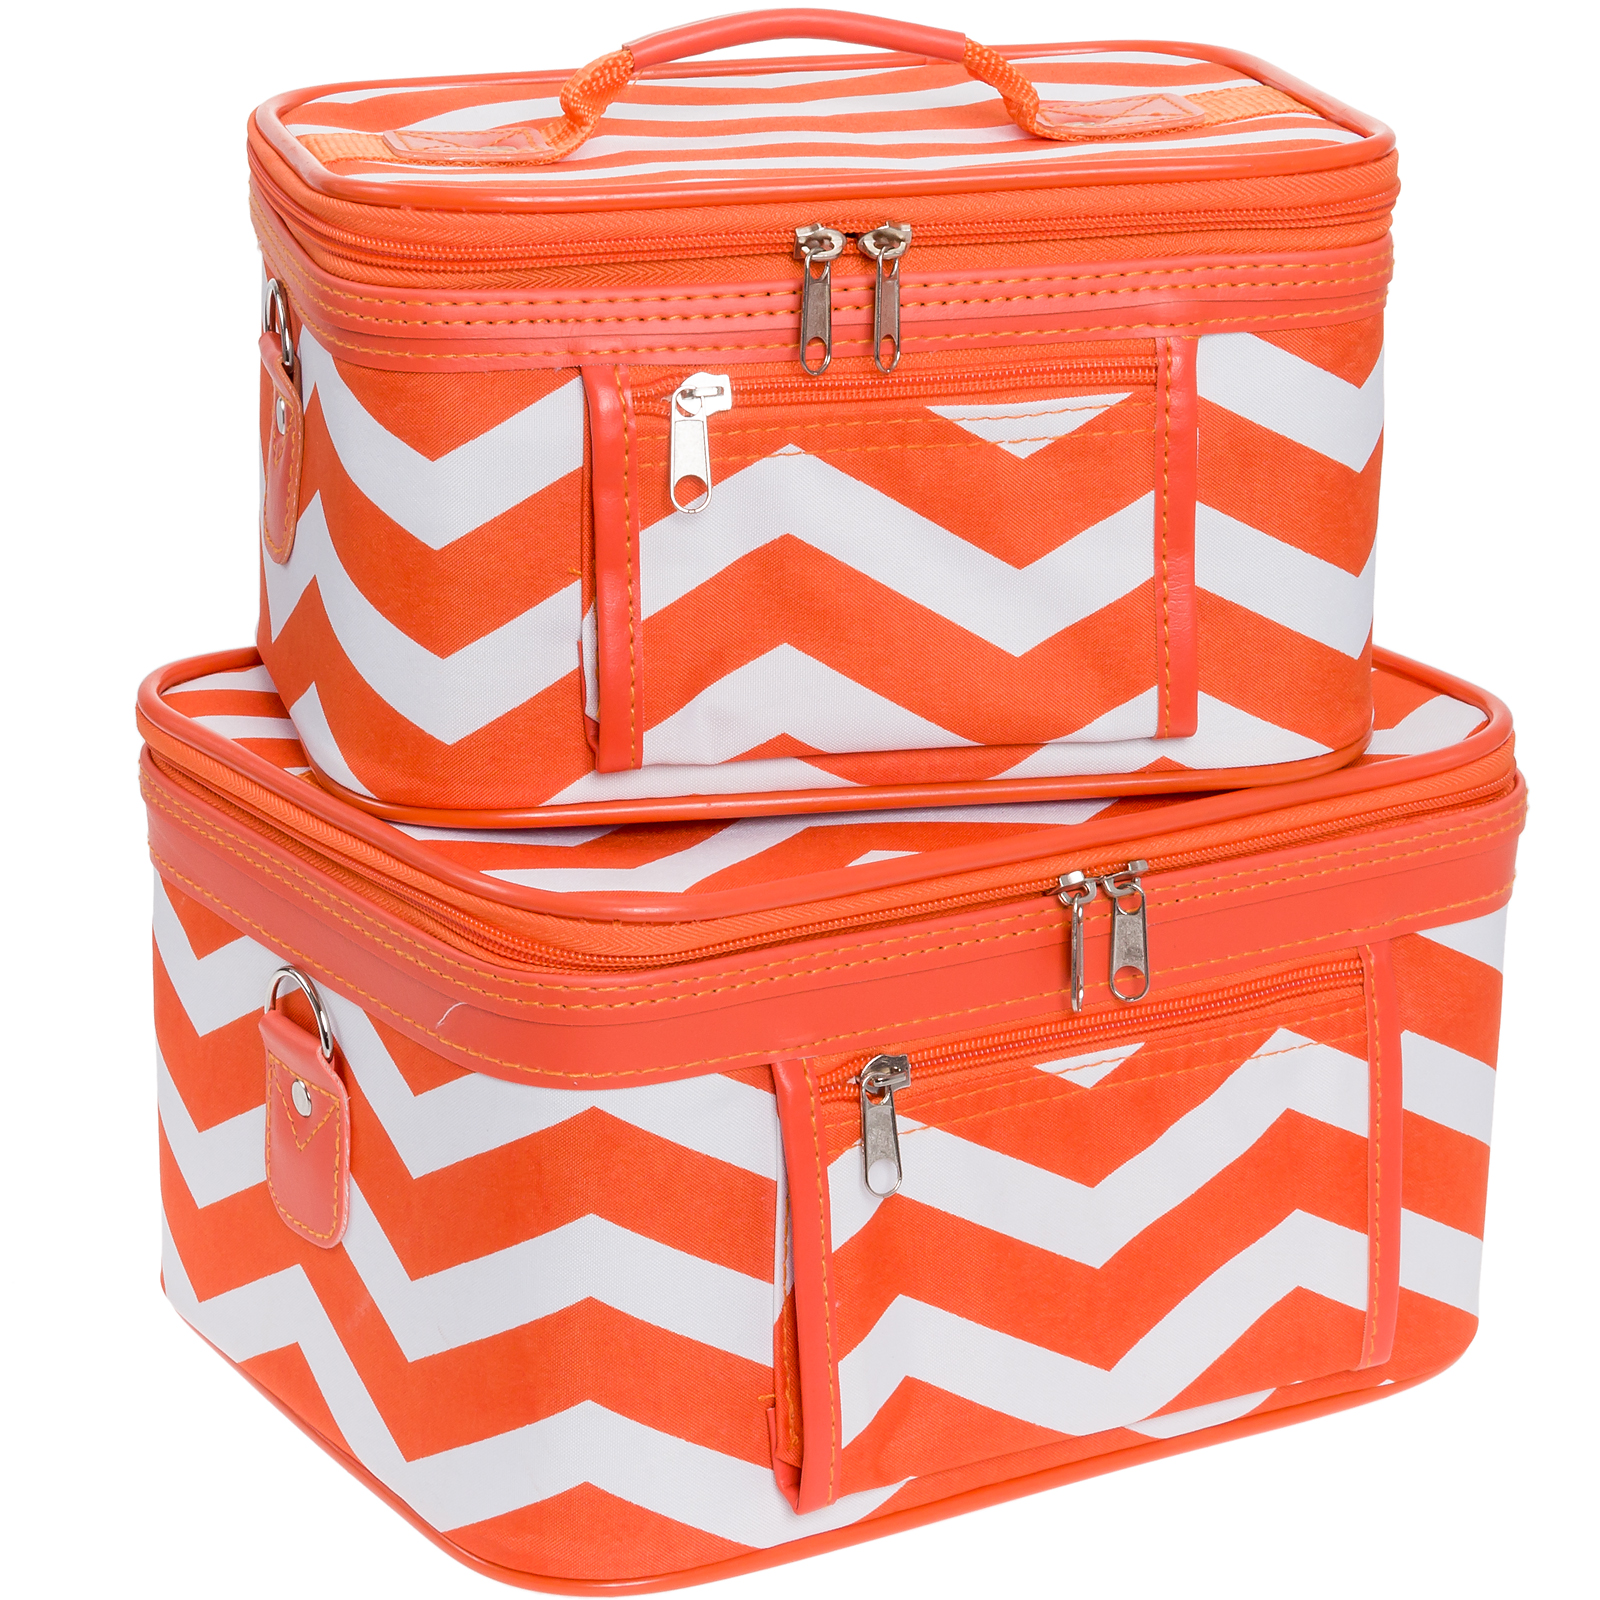 Women's Chevron Print Make-up Travel Cosmetic Train Cases - 2 Piece Set!